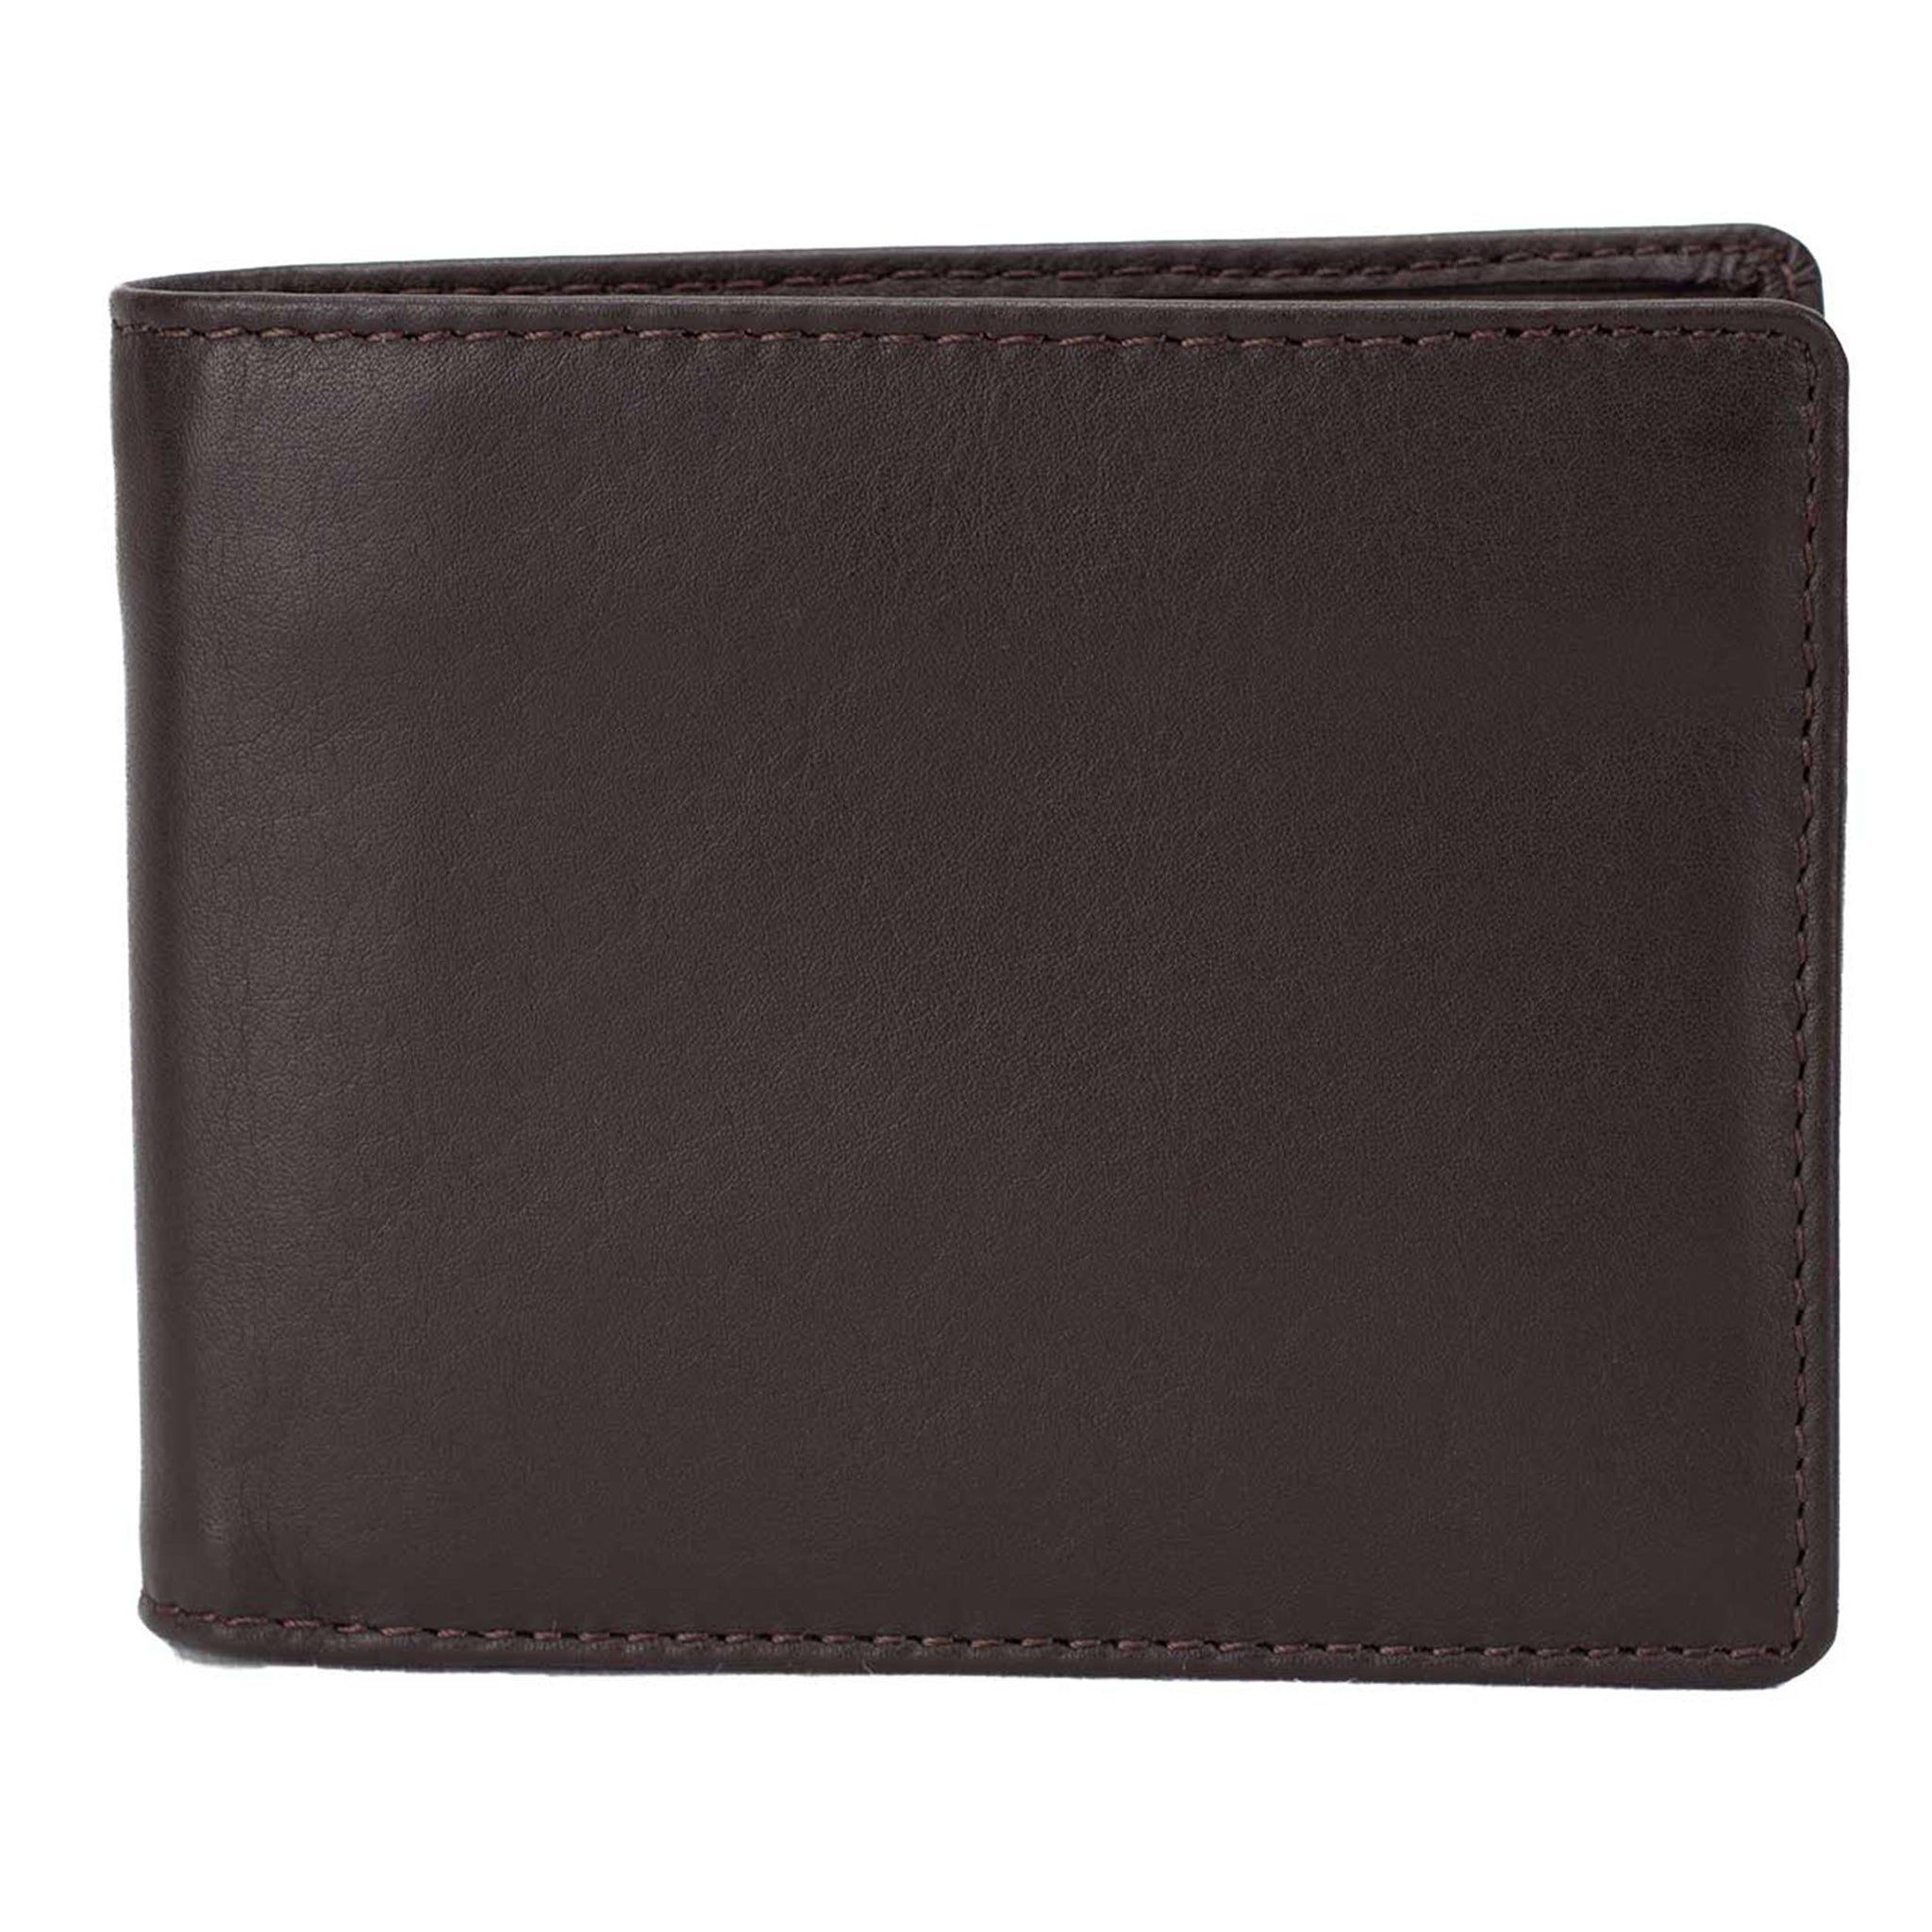 Wallet by DiLoro Italy Genuine Leather Slim Bifold Men's Wallet with RFID Blocking Technology in Dark Brown